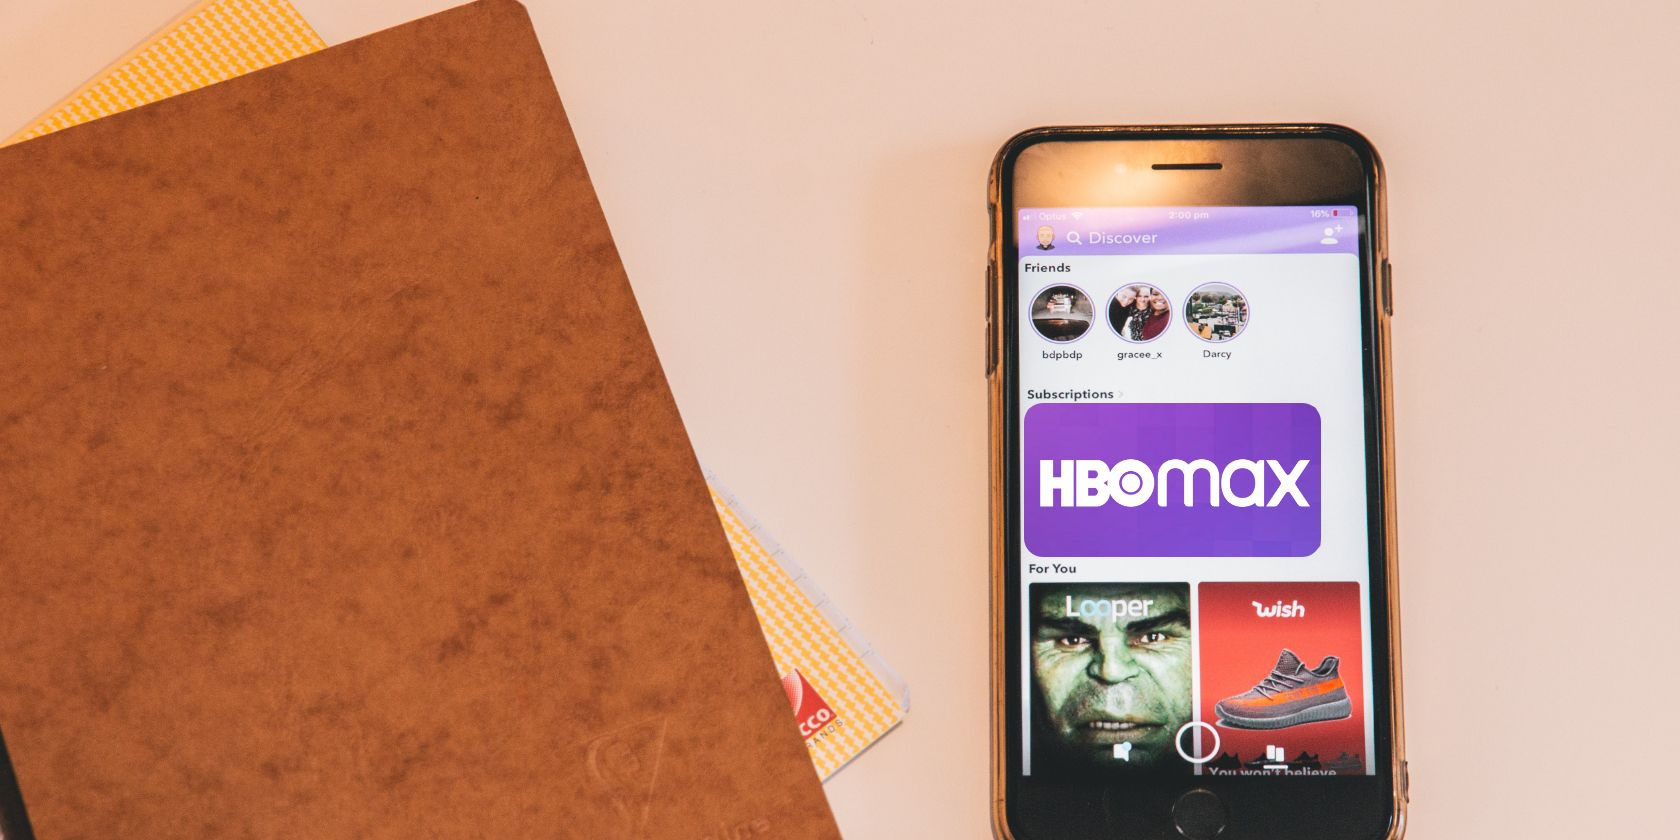 Snapchat Users Will Get to Watch Free HBO Max Episodes